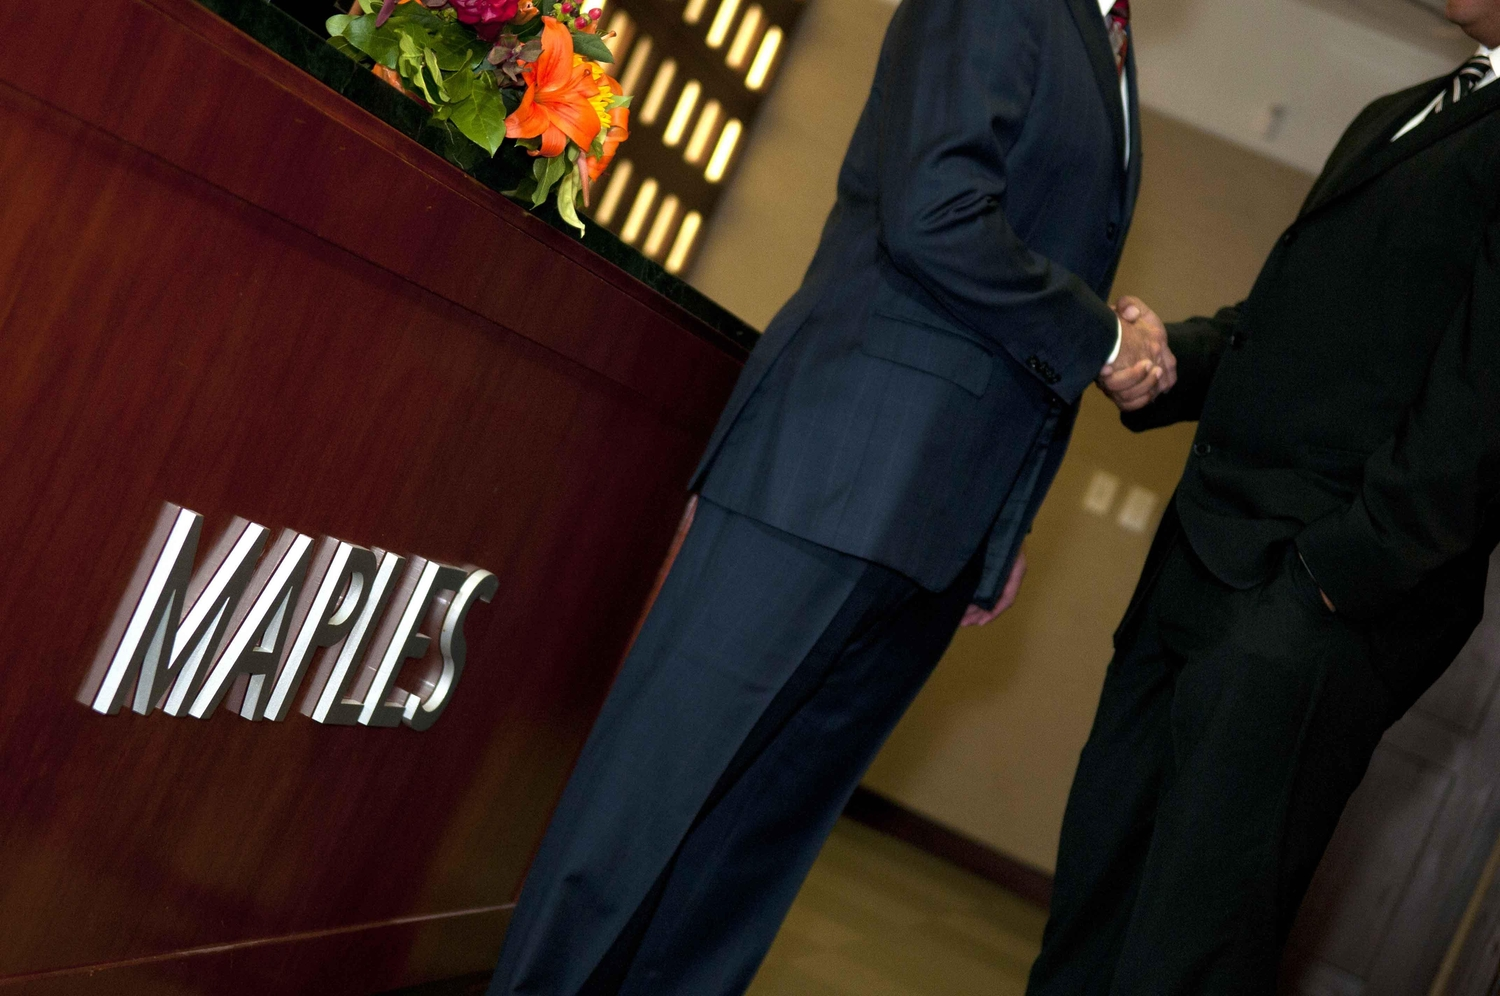 Two businessmen shaking hands outside the maples office